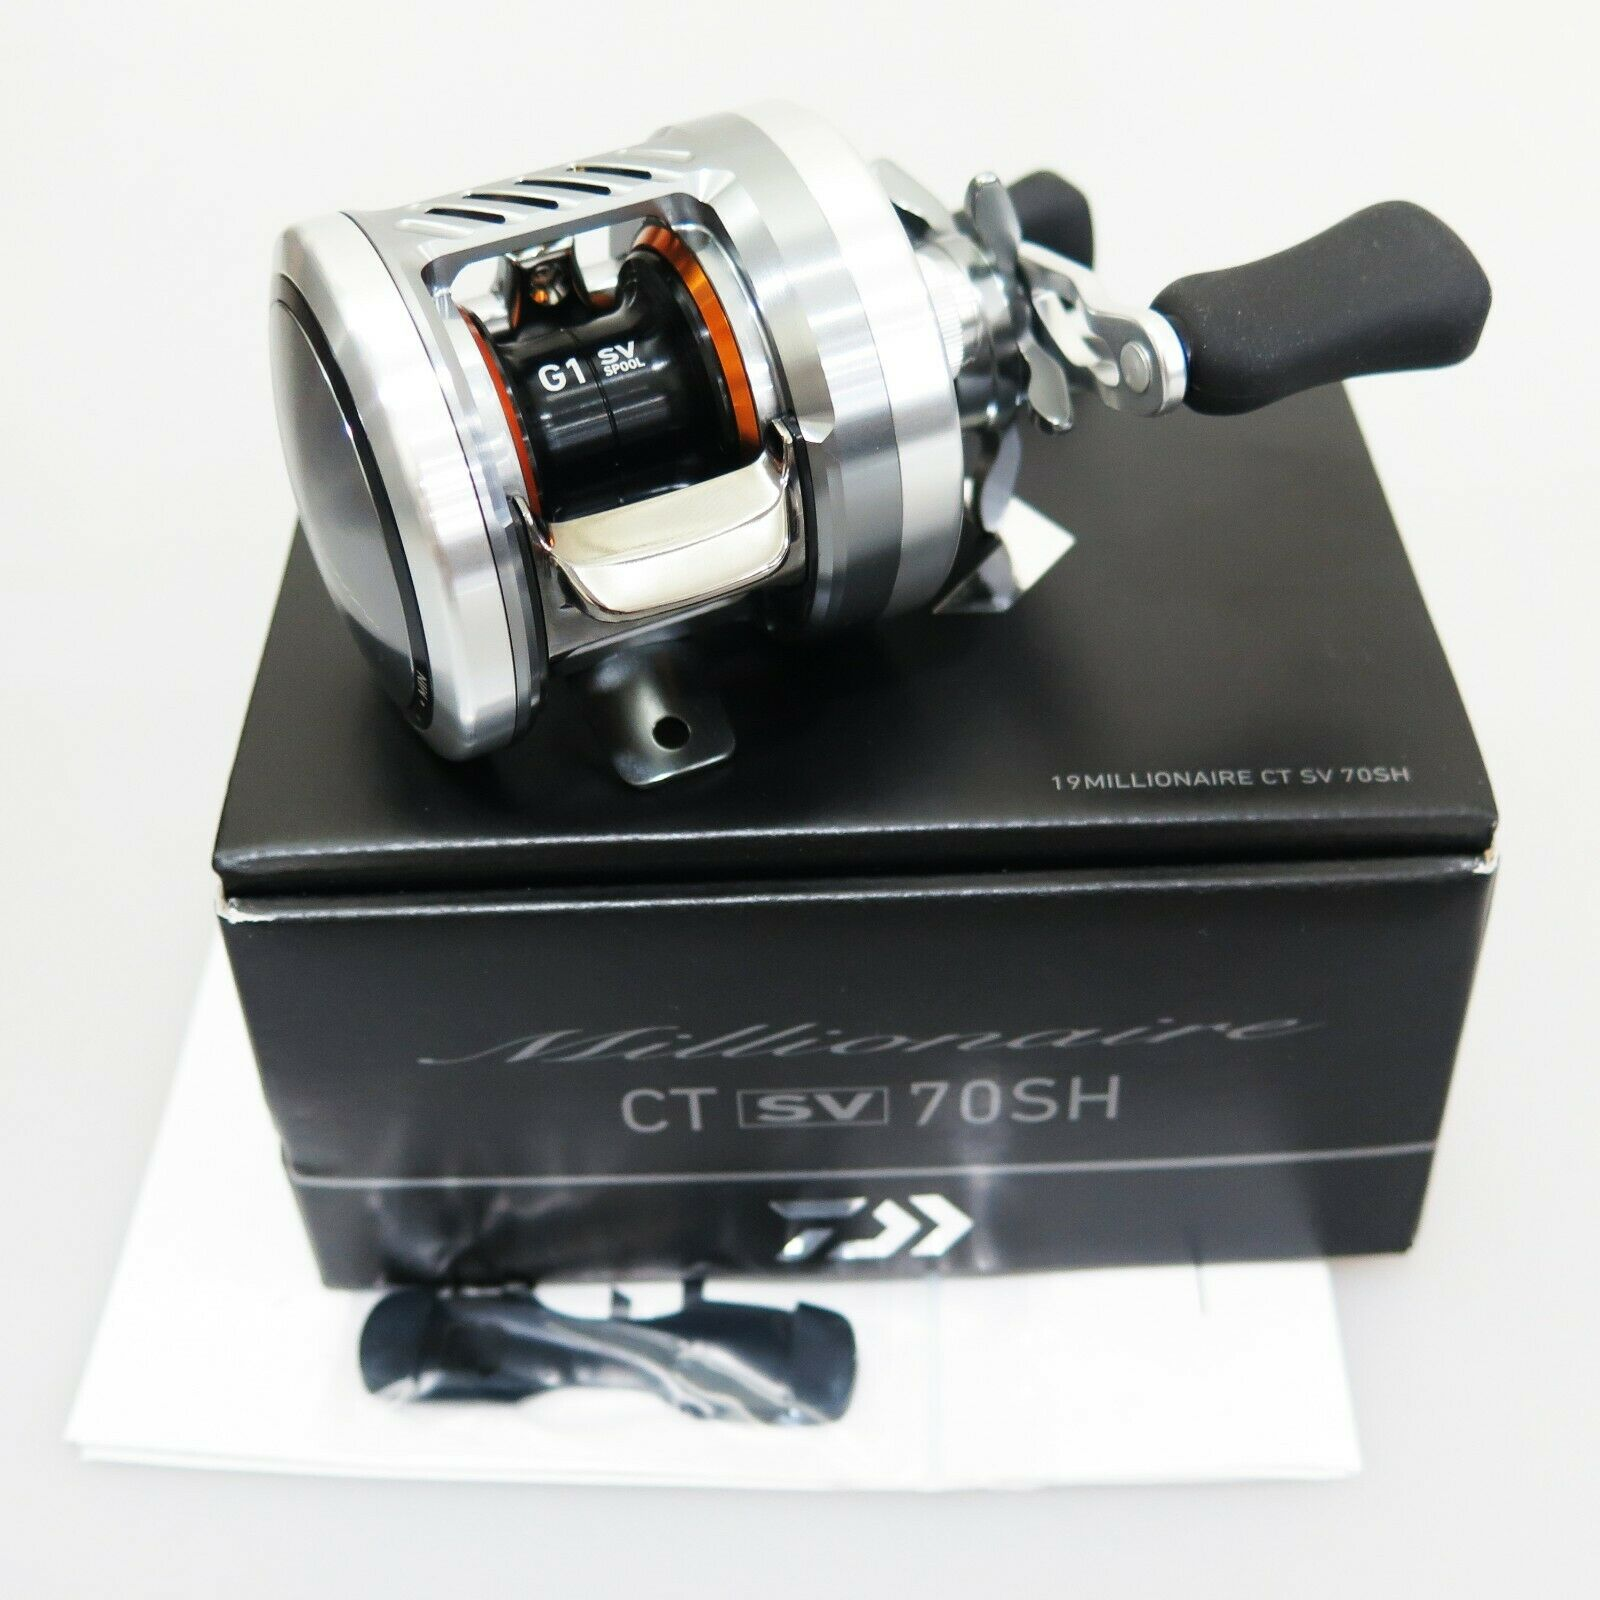 NEW 19 DAIWA MILLIONAIRE CT SV 70SH Baitcasting Reel FedEx Express 2days to US